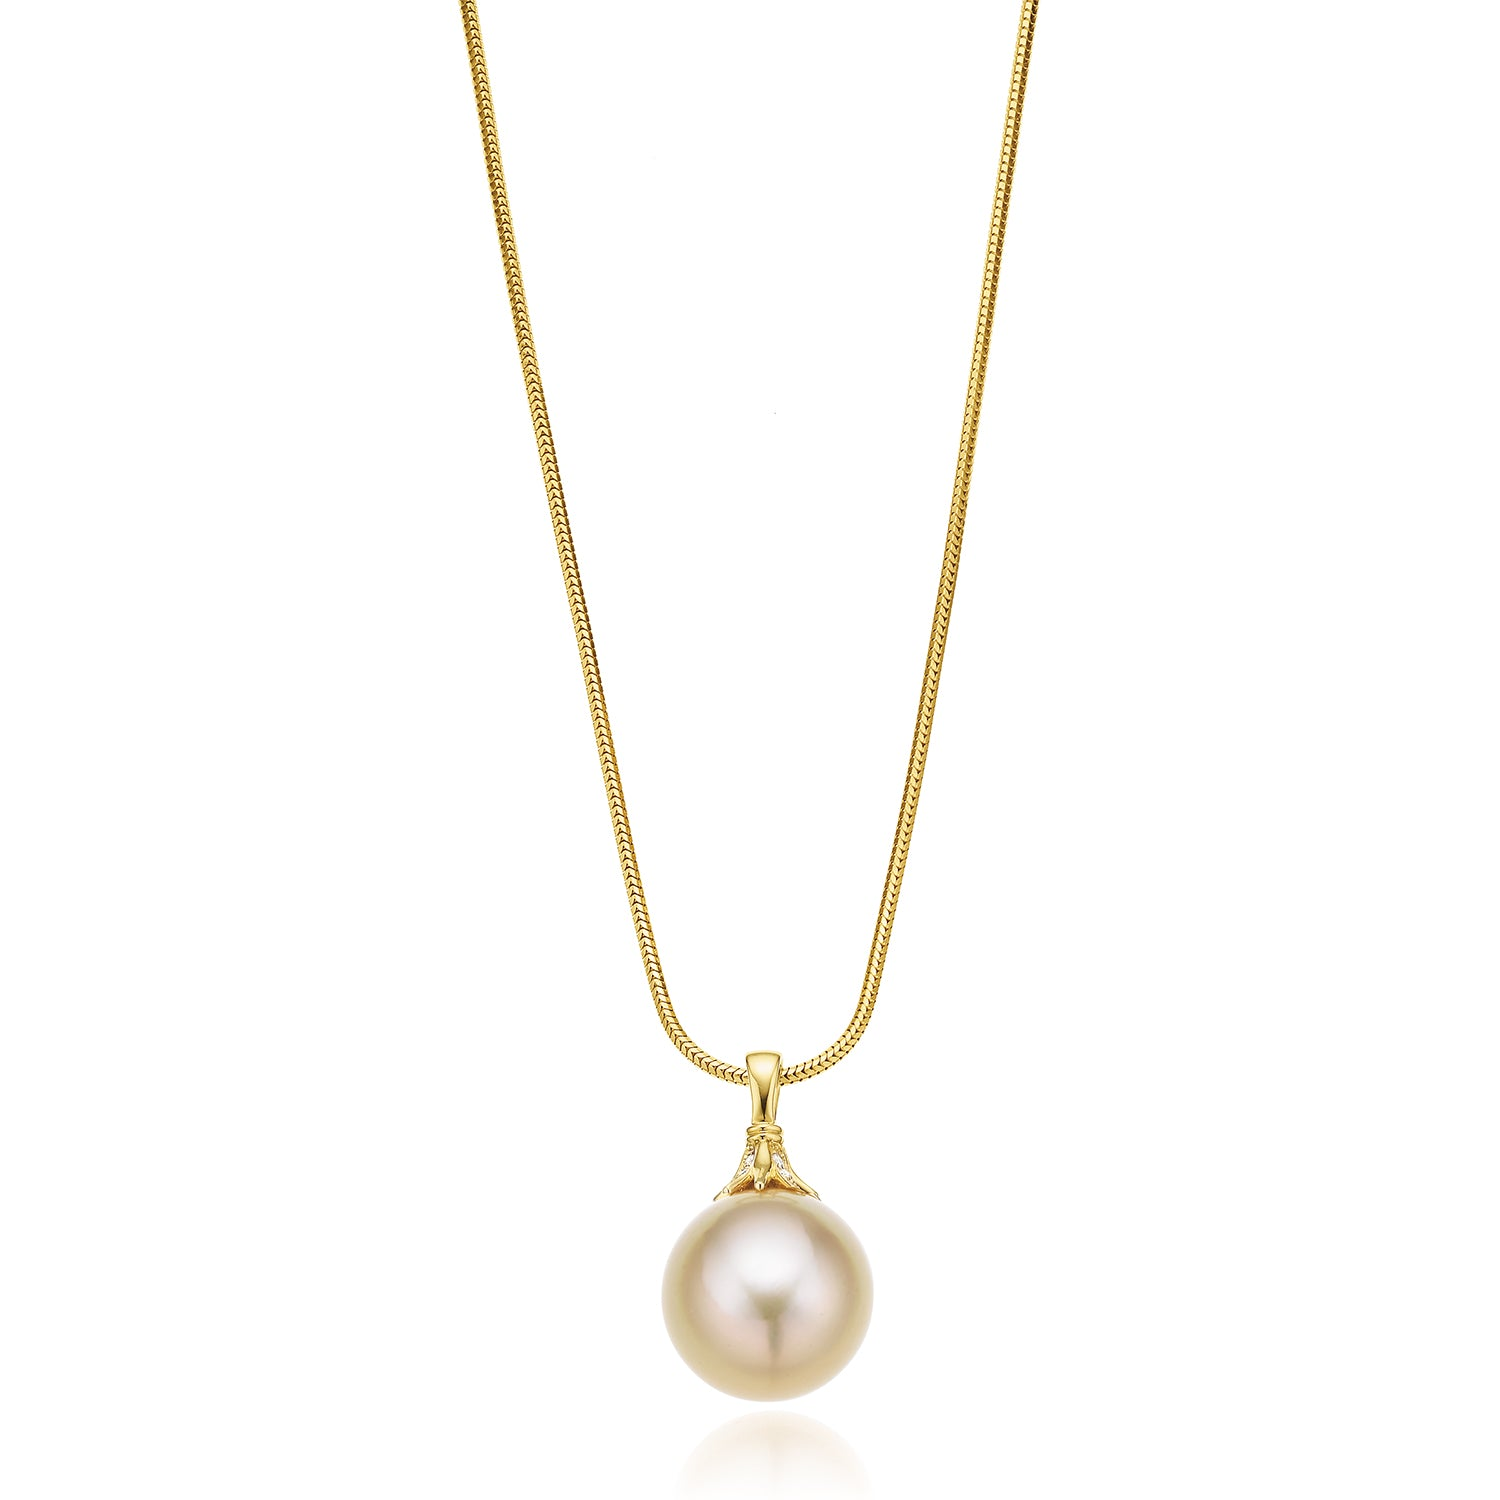 18ct Yellow Gold 12-13mm Gold South Sea Pearl Diamond Pendant Set